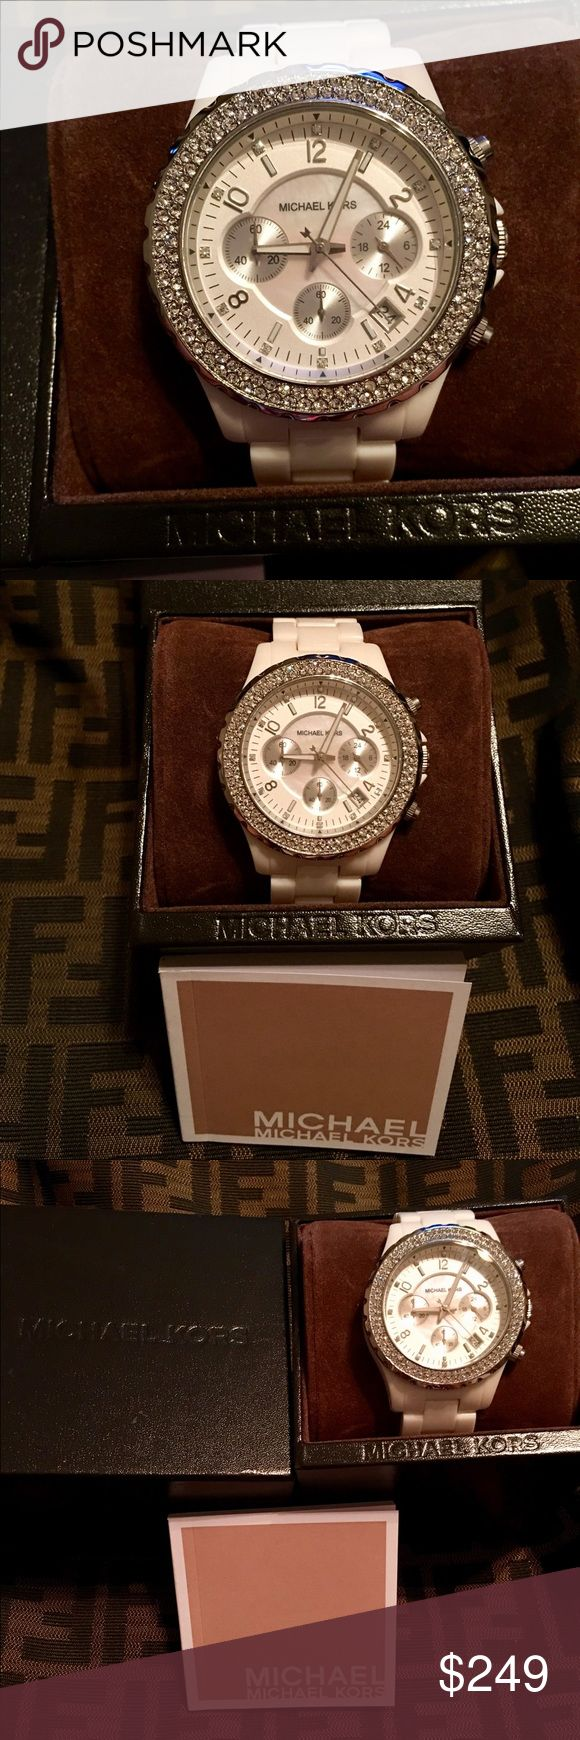 White Ceramic Michael Kors Timepiece This Timepiece is all Ceramic that features a Mother of Pearl Dial with  Crystals around the Bezel and inside the Dial. It's a Chronograph and  has a Date window. It is Water resistant up to 5 ATM ( 165 ft ) so it can be worn in the shower and in the pool. Make me an offer! Happy Shopping 💎⌚️⚪️ Michael Kors Jewelry